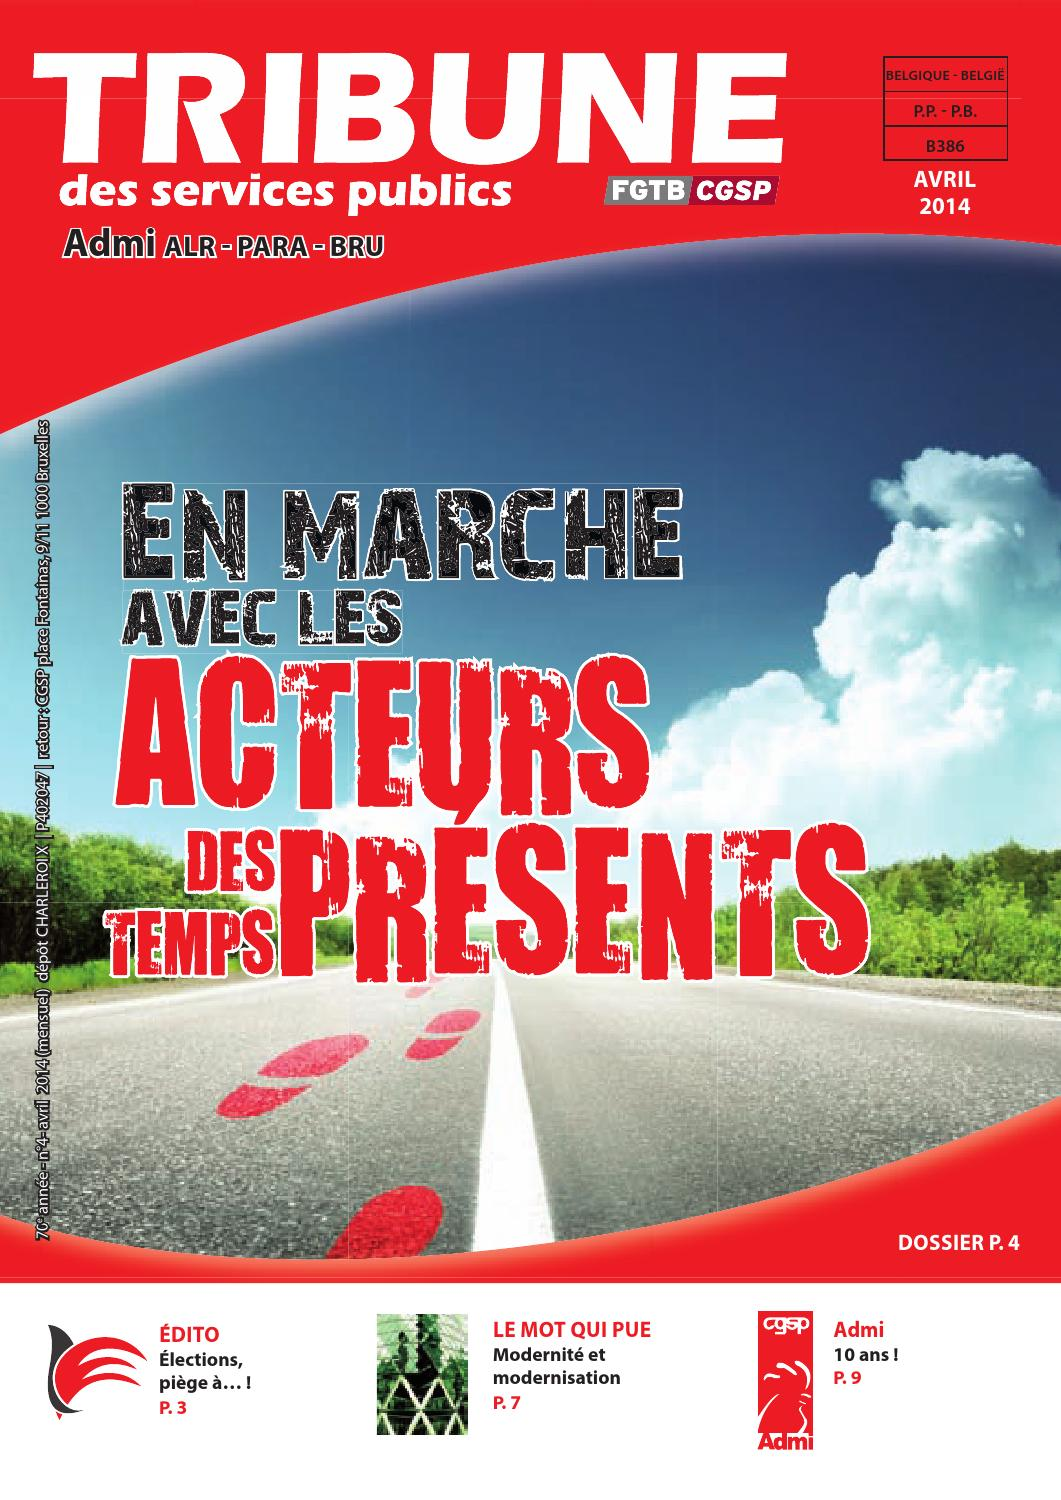 admi web avril 2014 by cgsp wallonne